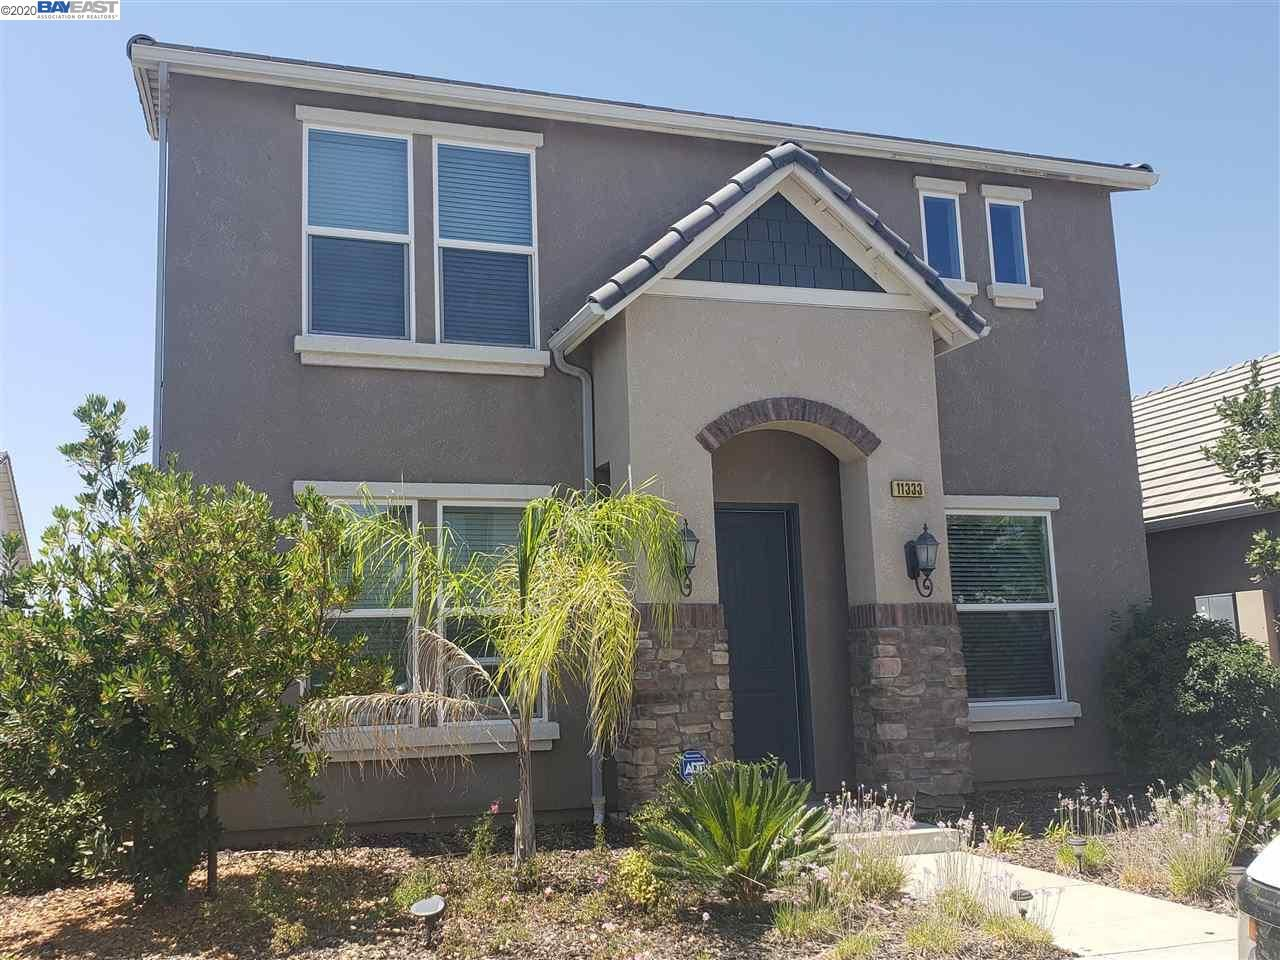 Photo for 11333 N Blue Sage Ave, FRESNO, CA 93730 (MLS # 40915027)